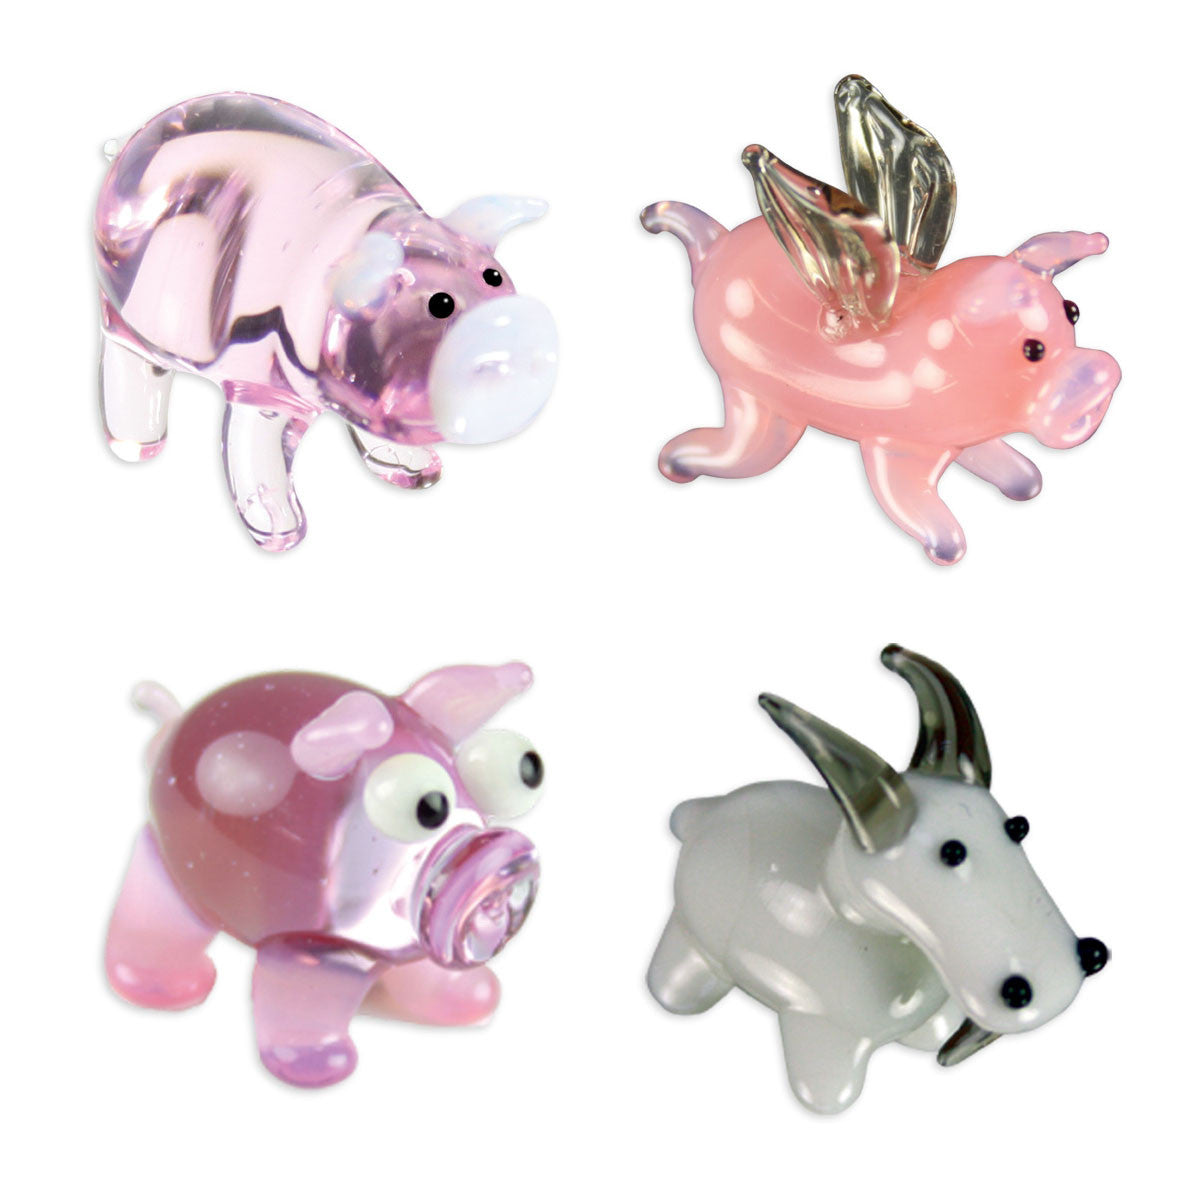 Looking Glass Torch Figurines - 3 Pigs & A Goat 4-Pack - Off The Wall Toys and Gifts